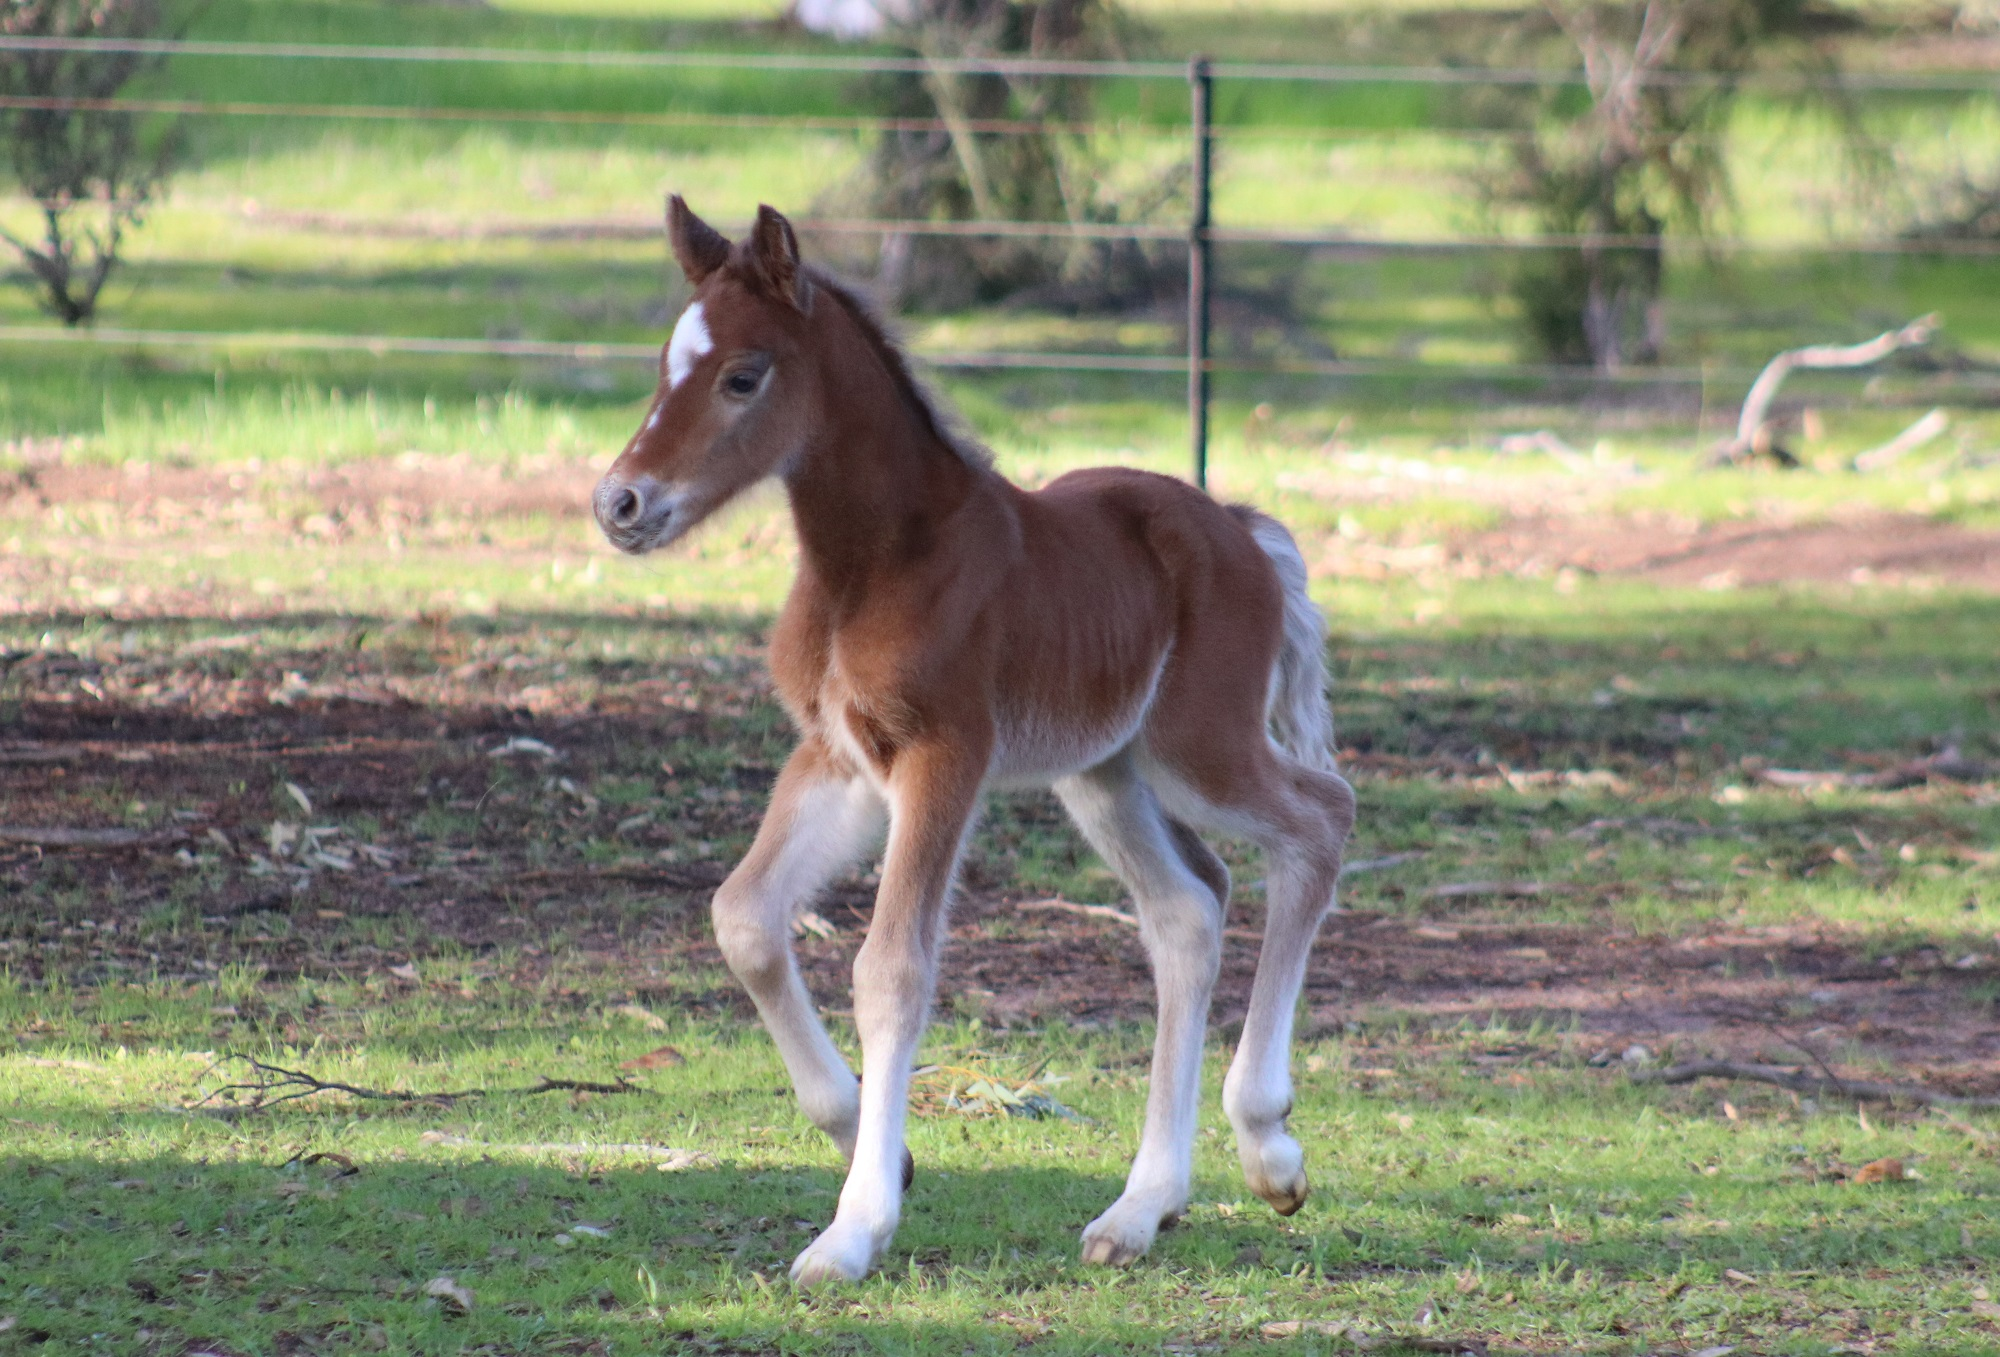 IMG 0870 crop email 2019 Foals